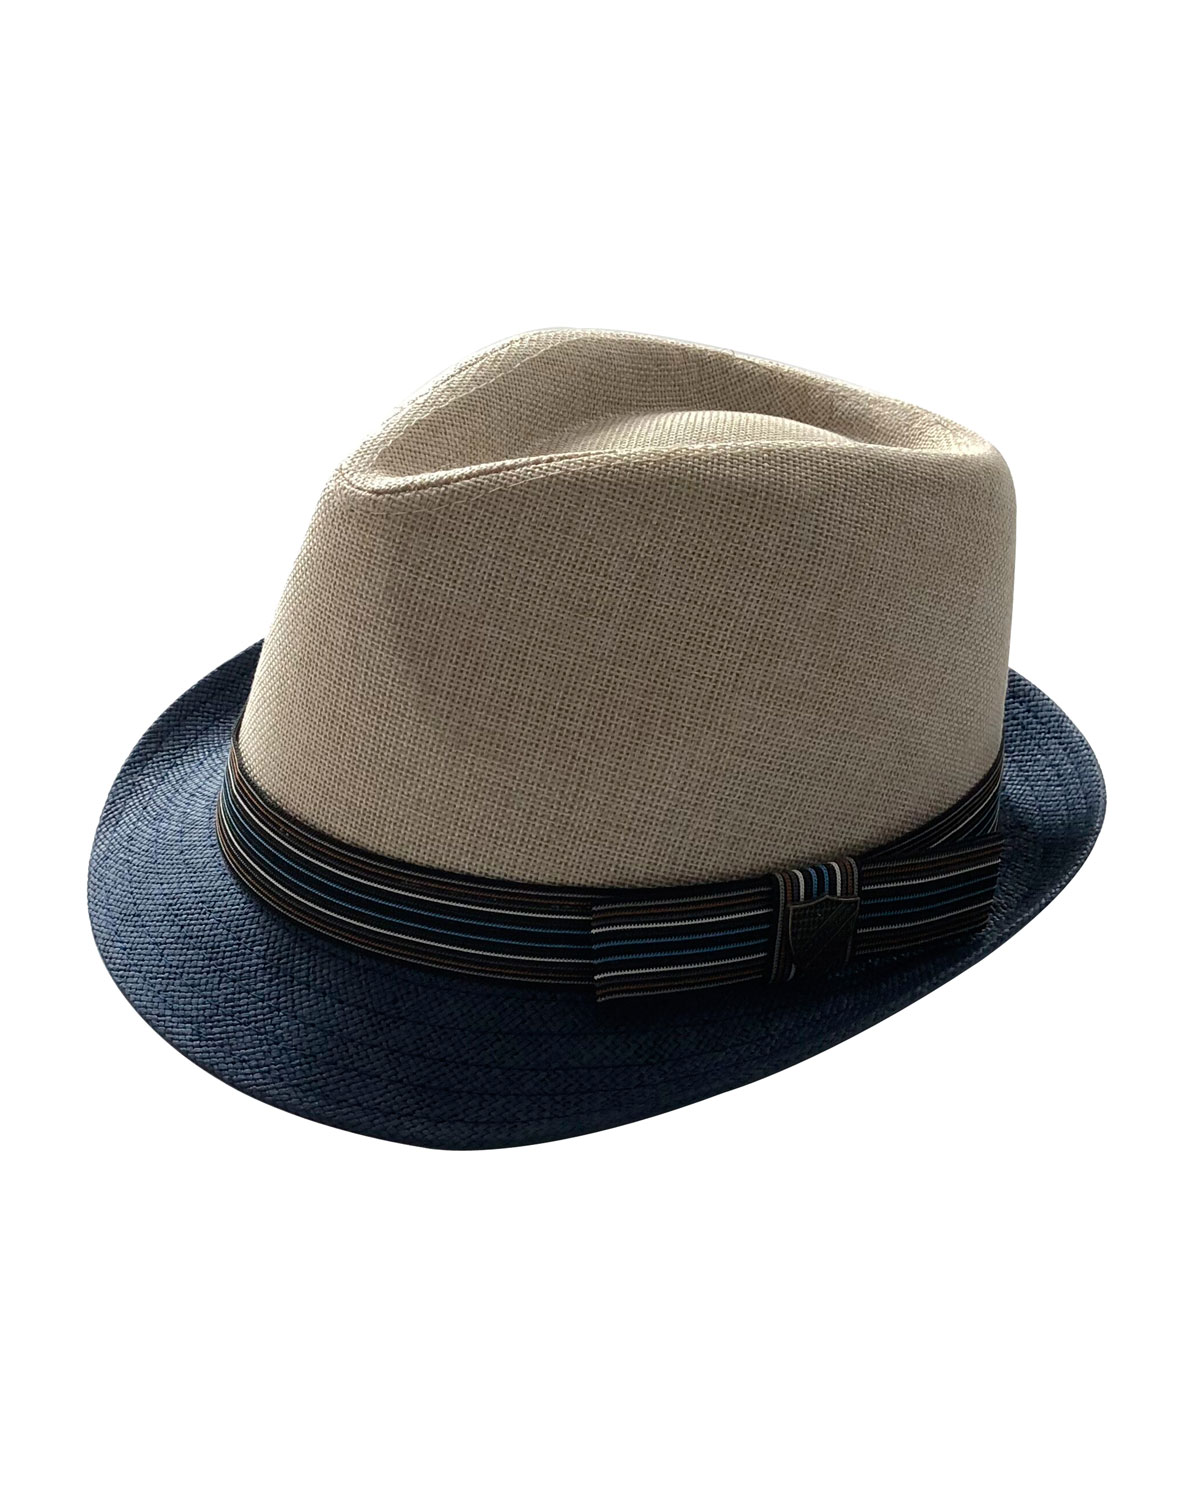 509a750f43cfd Fore Boys' Two-Tone Fedora Hat | Neiman Marcus